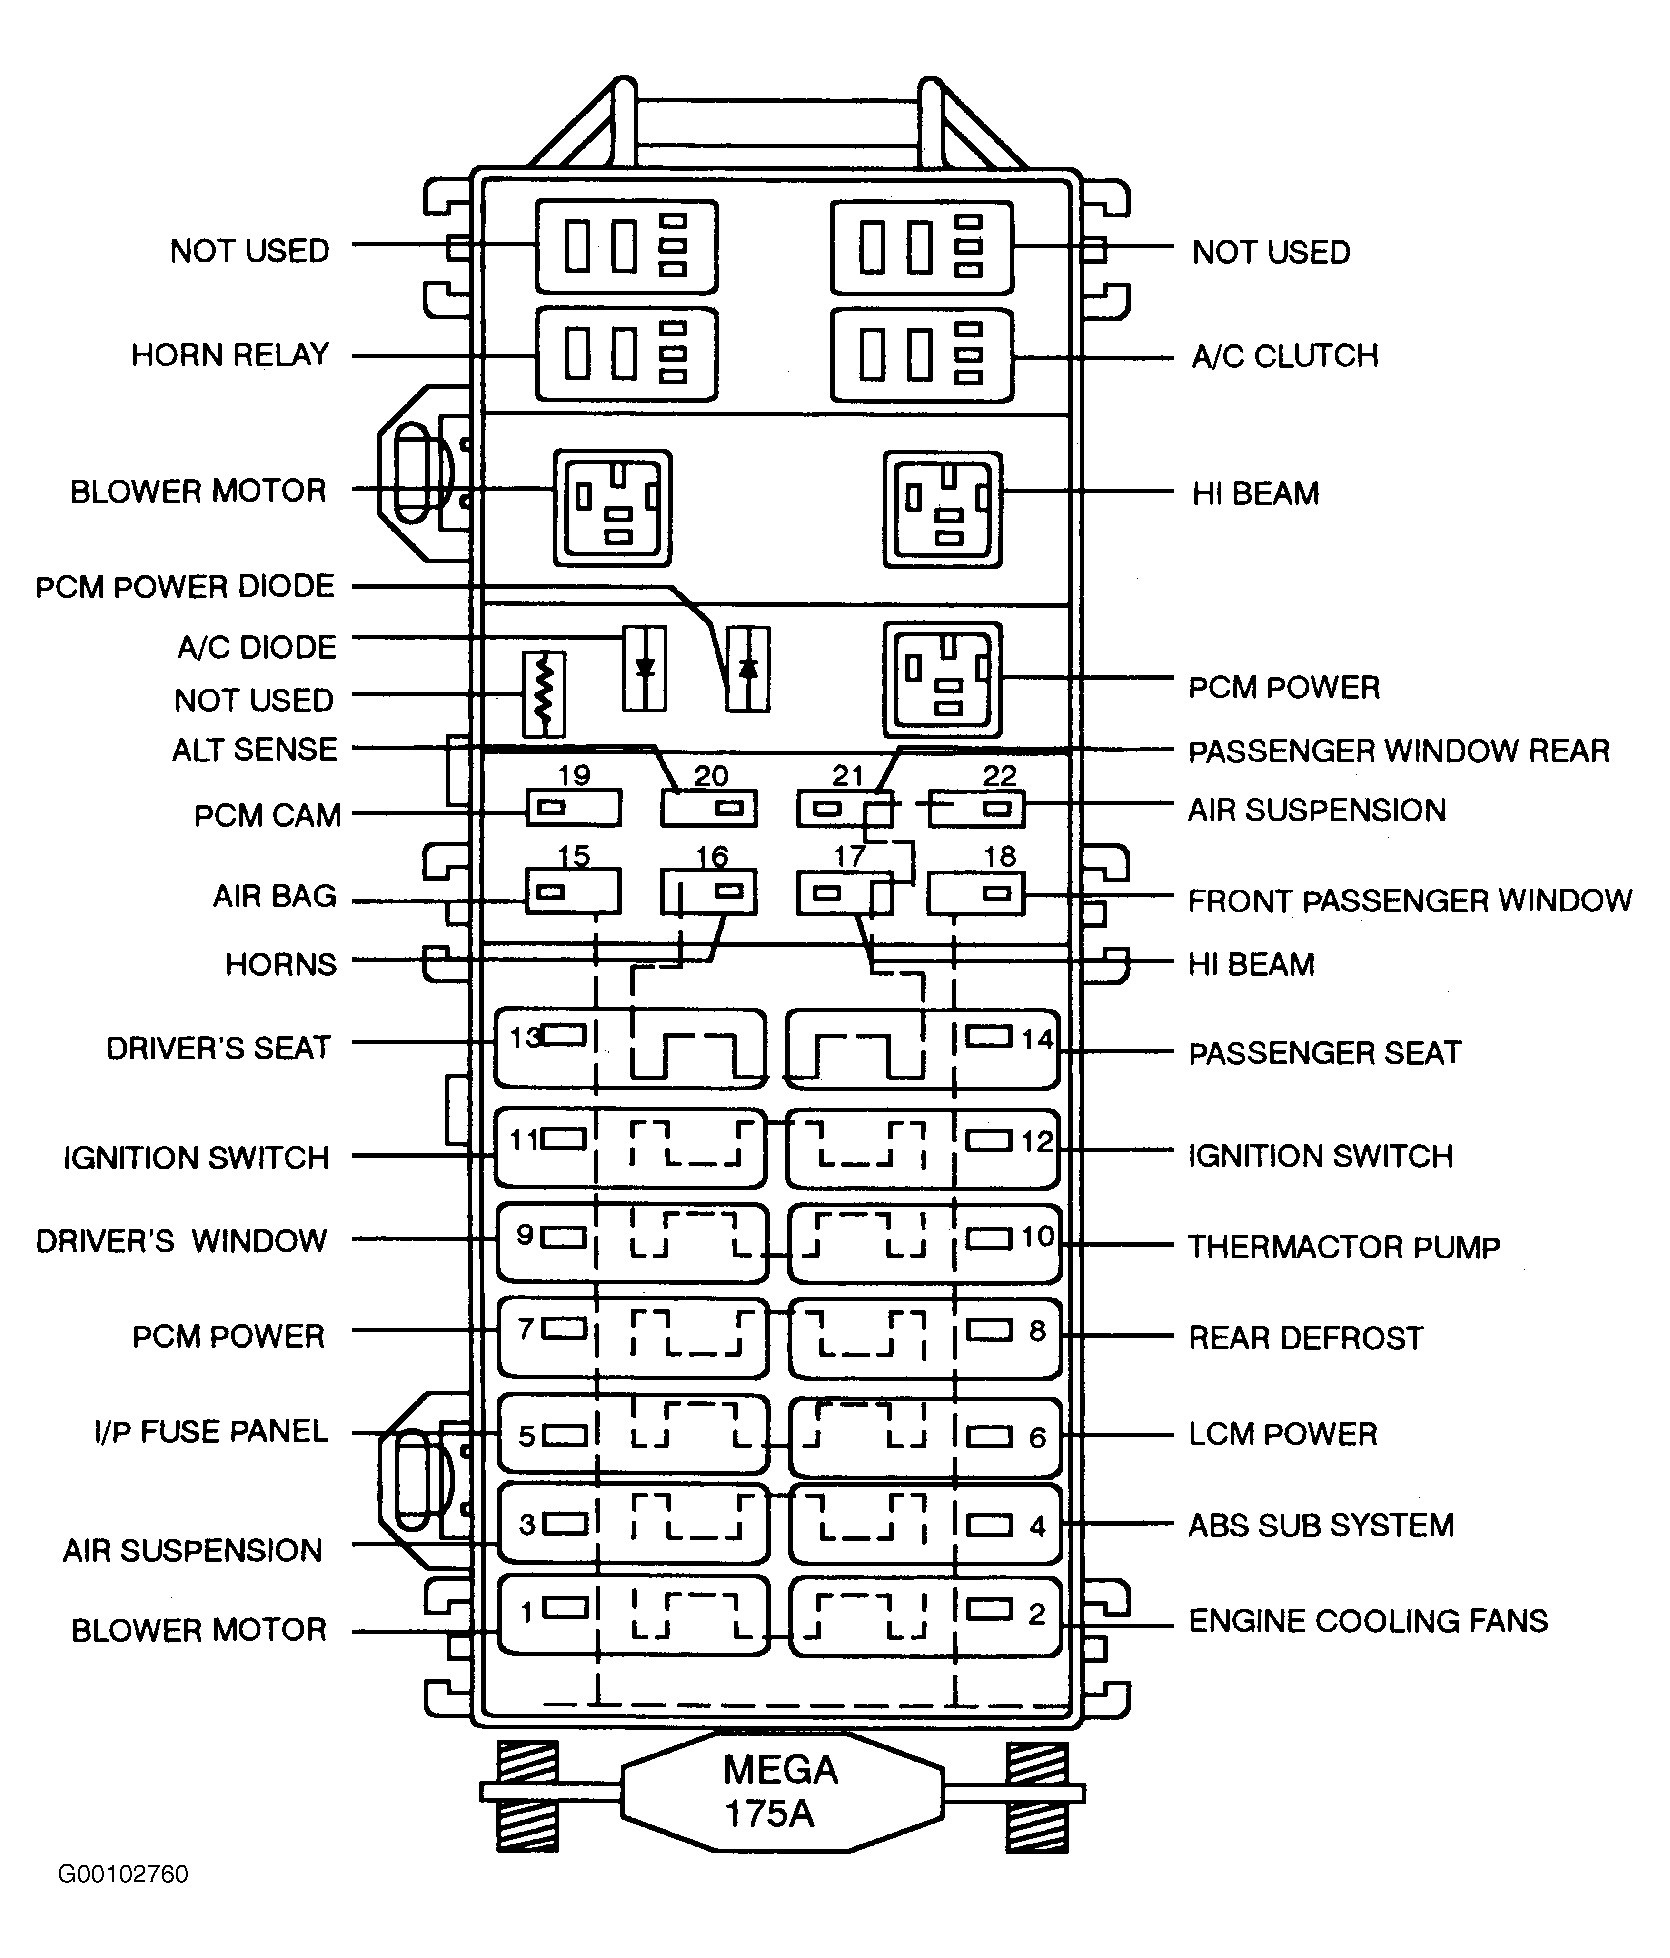 e46 320d fuse box diagram wiring library rh 10 dirtytalk camgirls de [ 1670 x 1958 Pixel ]